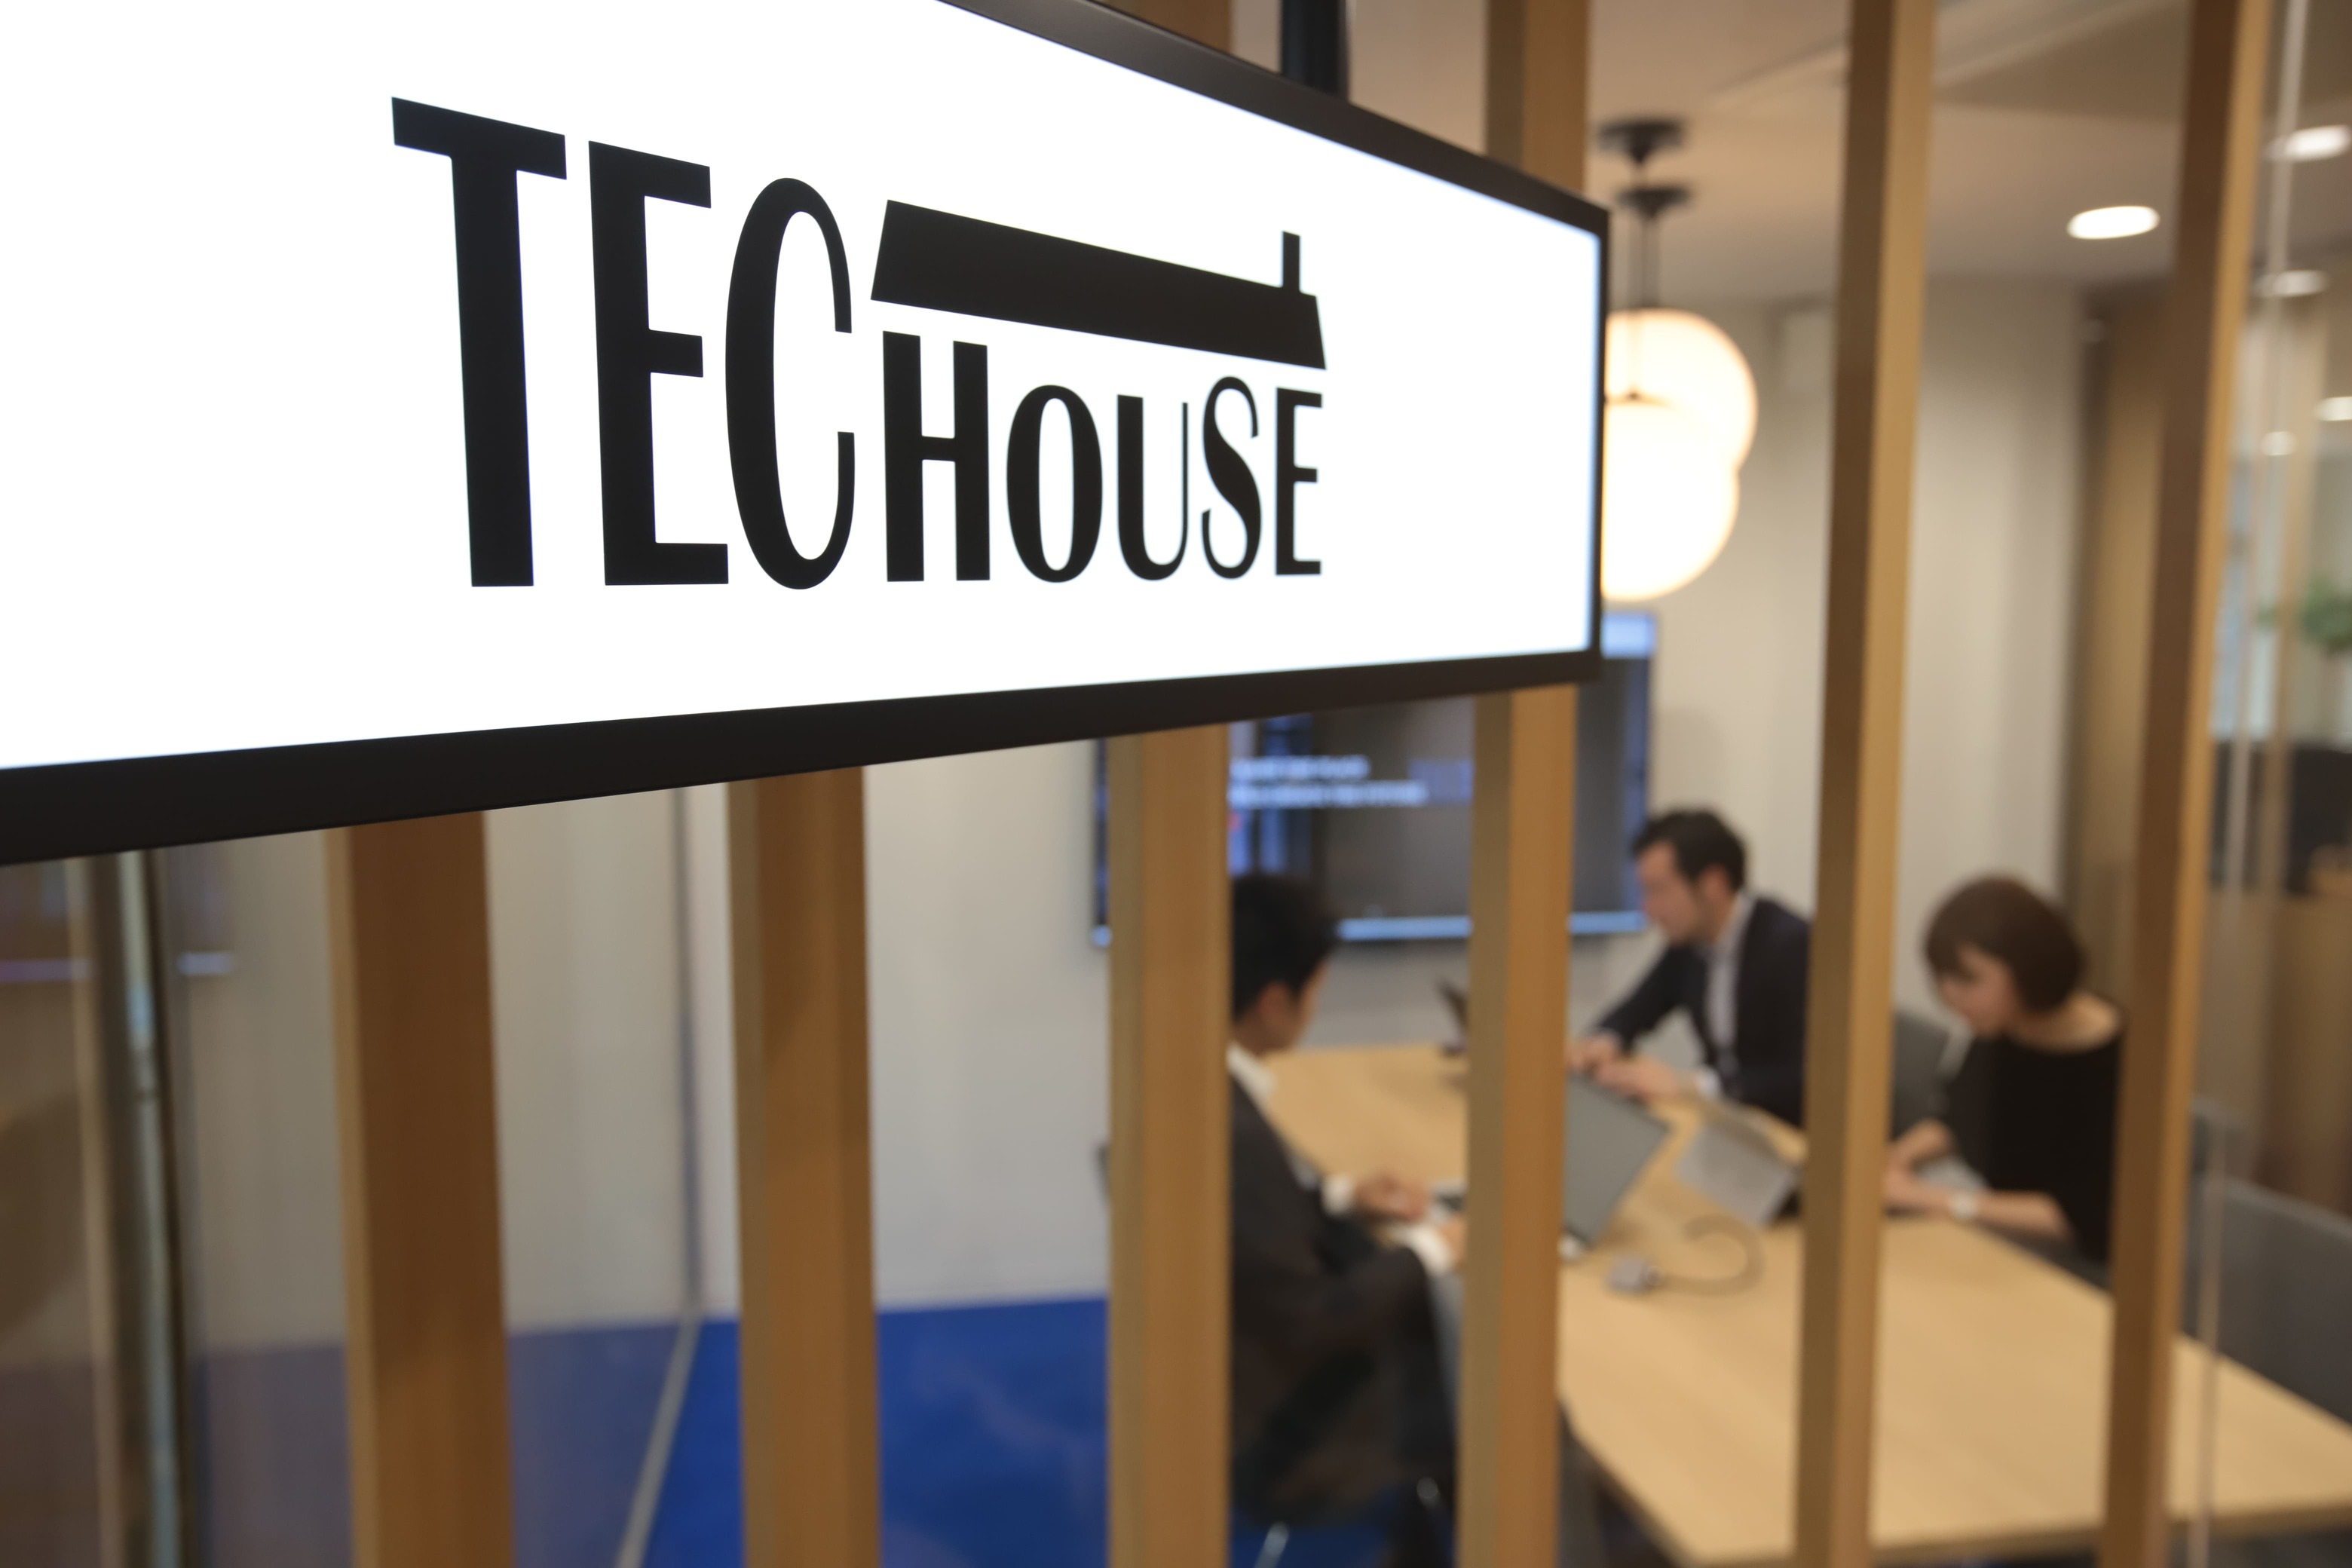 What is GOOD point working at Techouse?